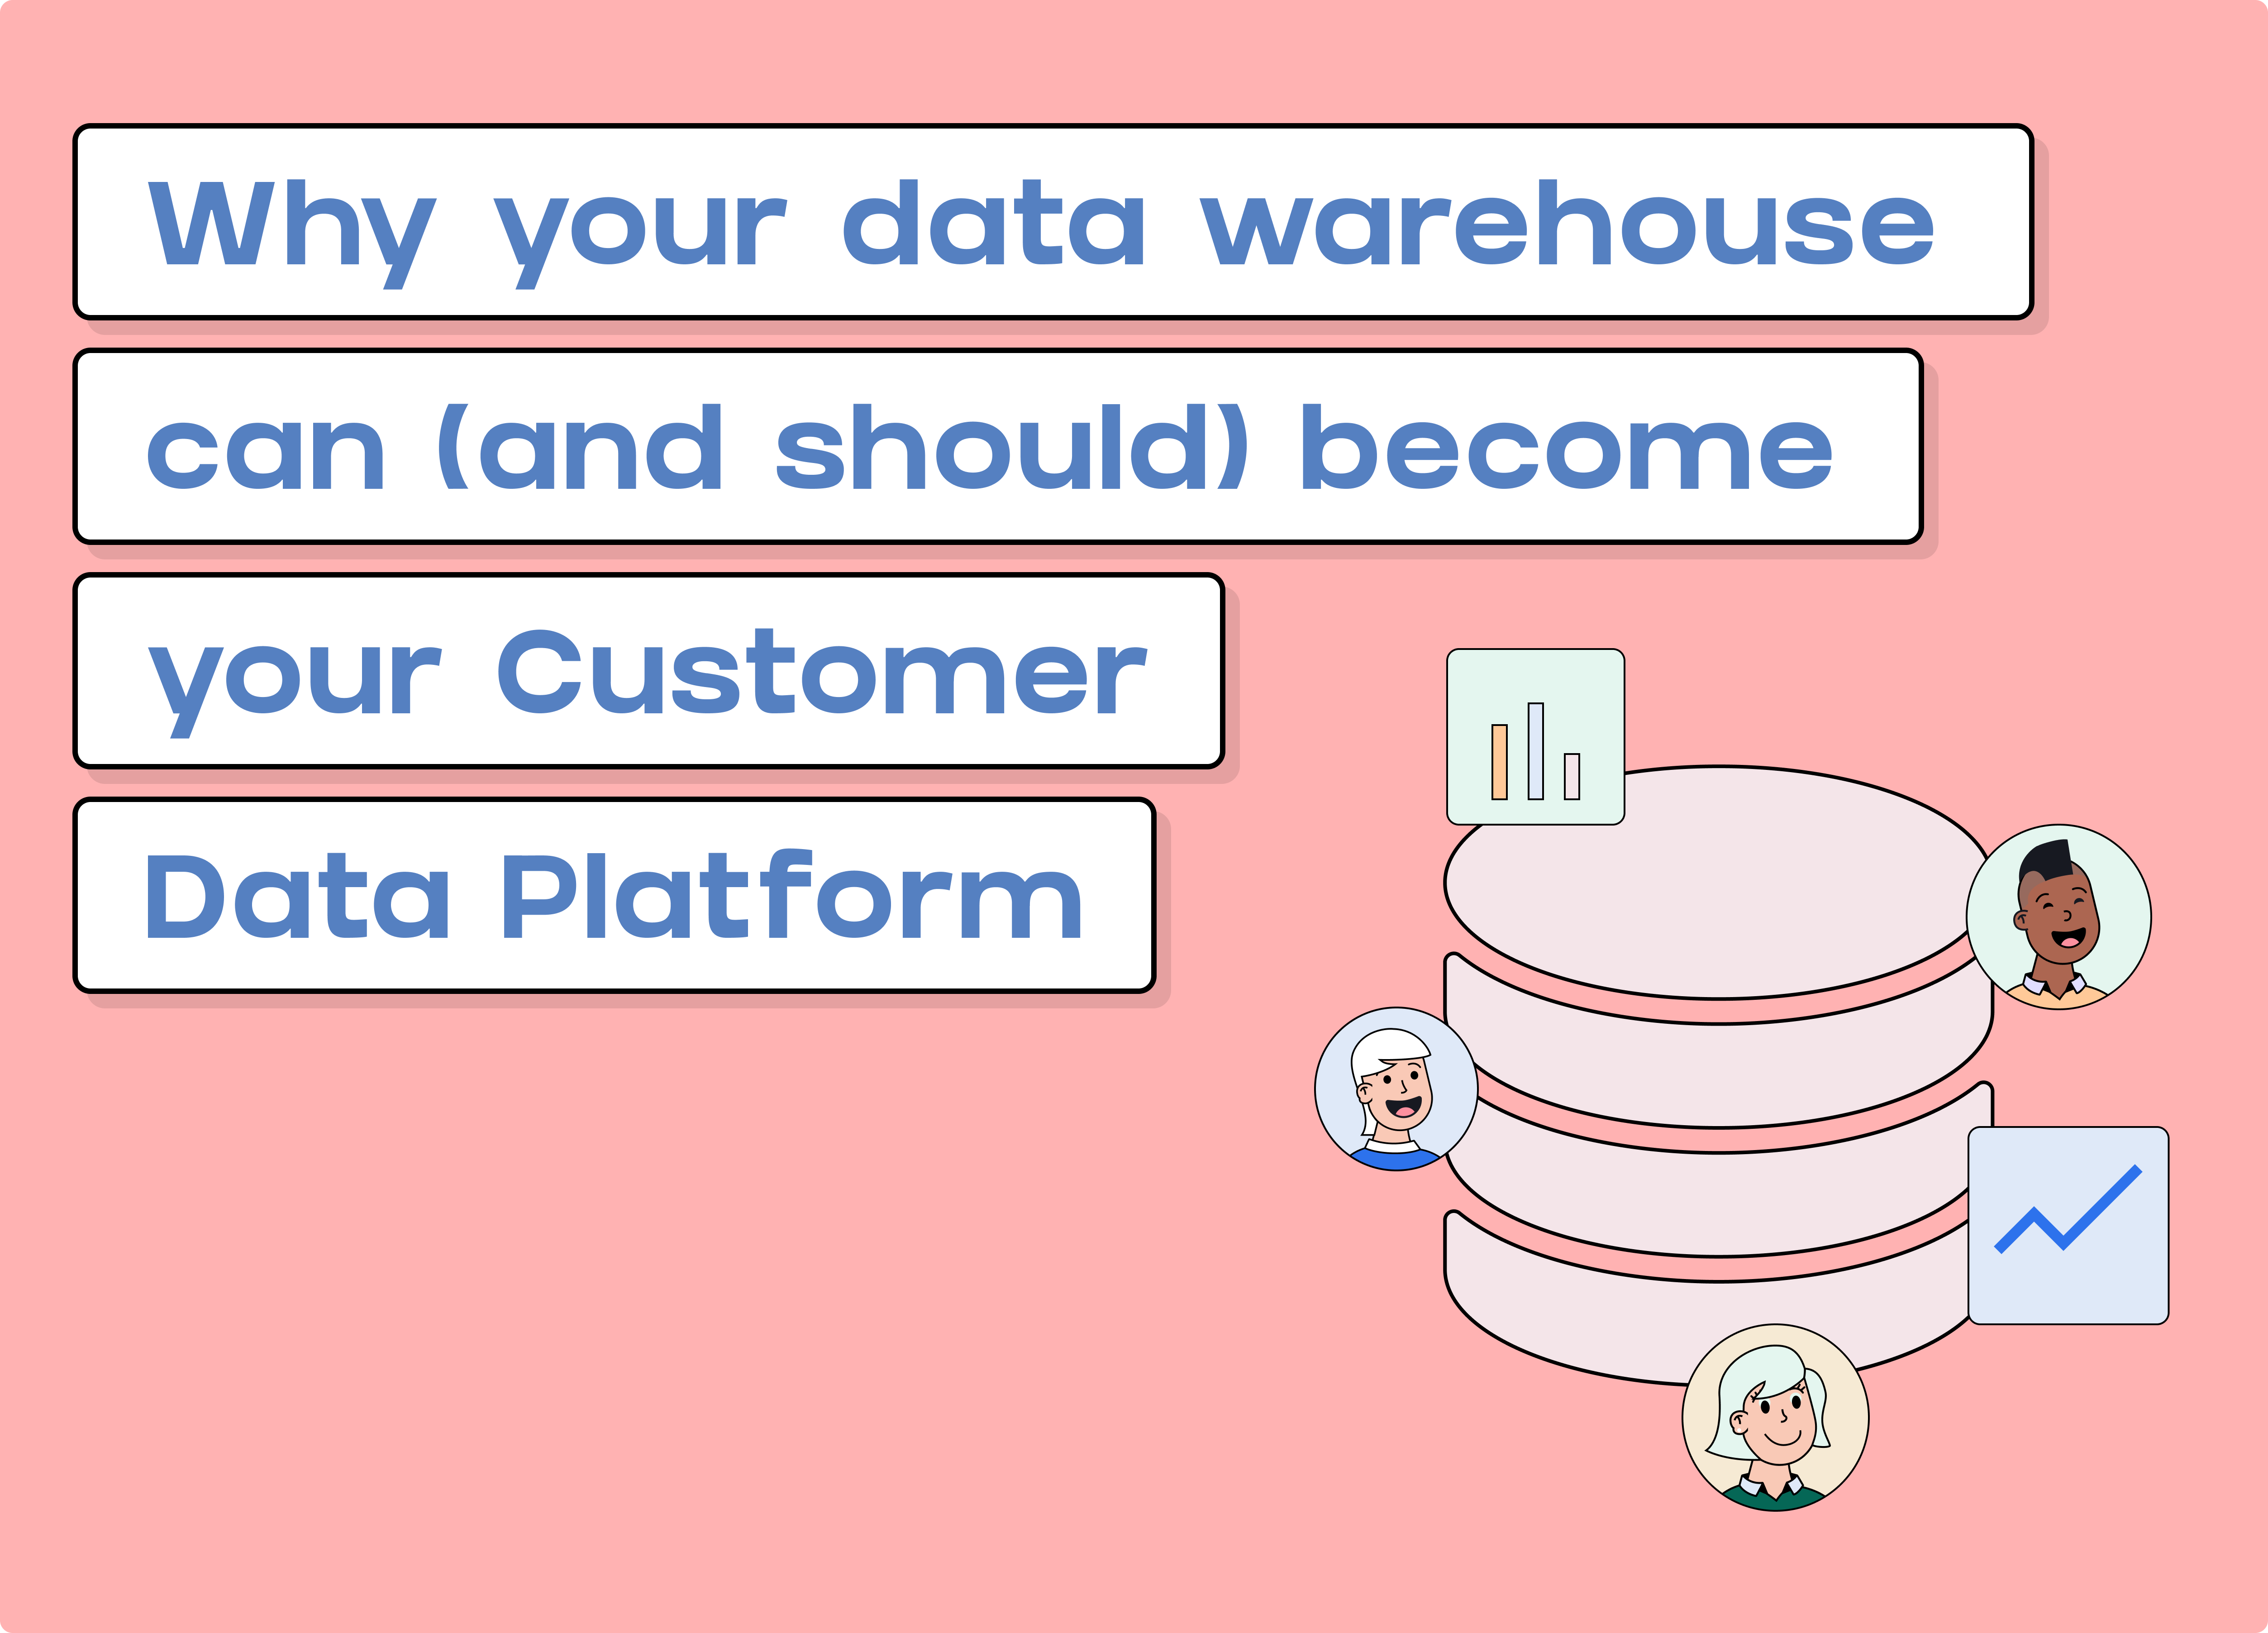 Why Your Data Warehouse Can (and Should) Become Your CDP